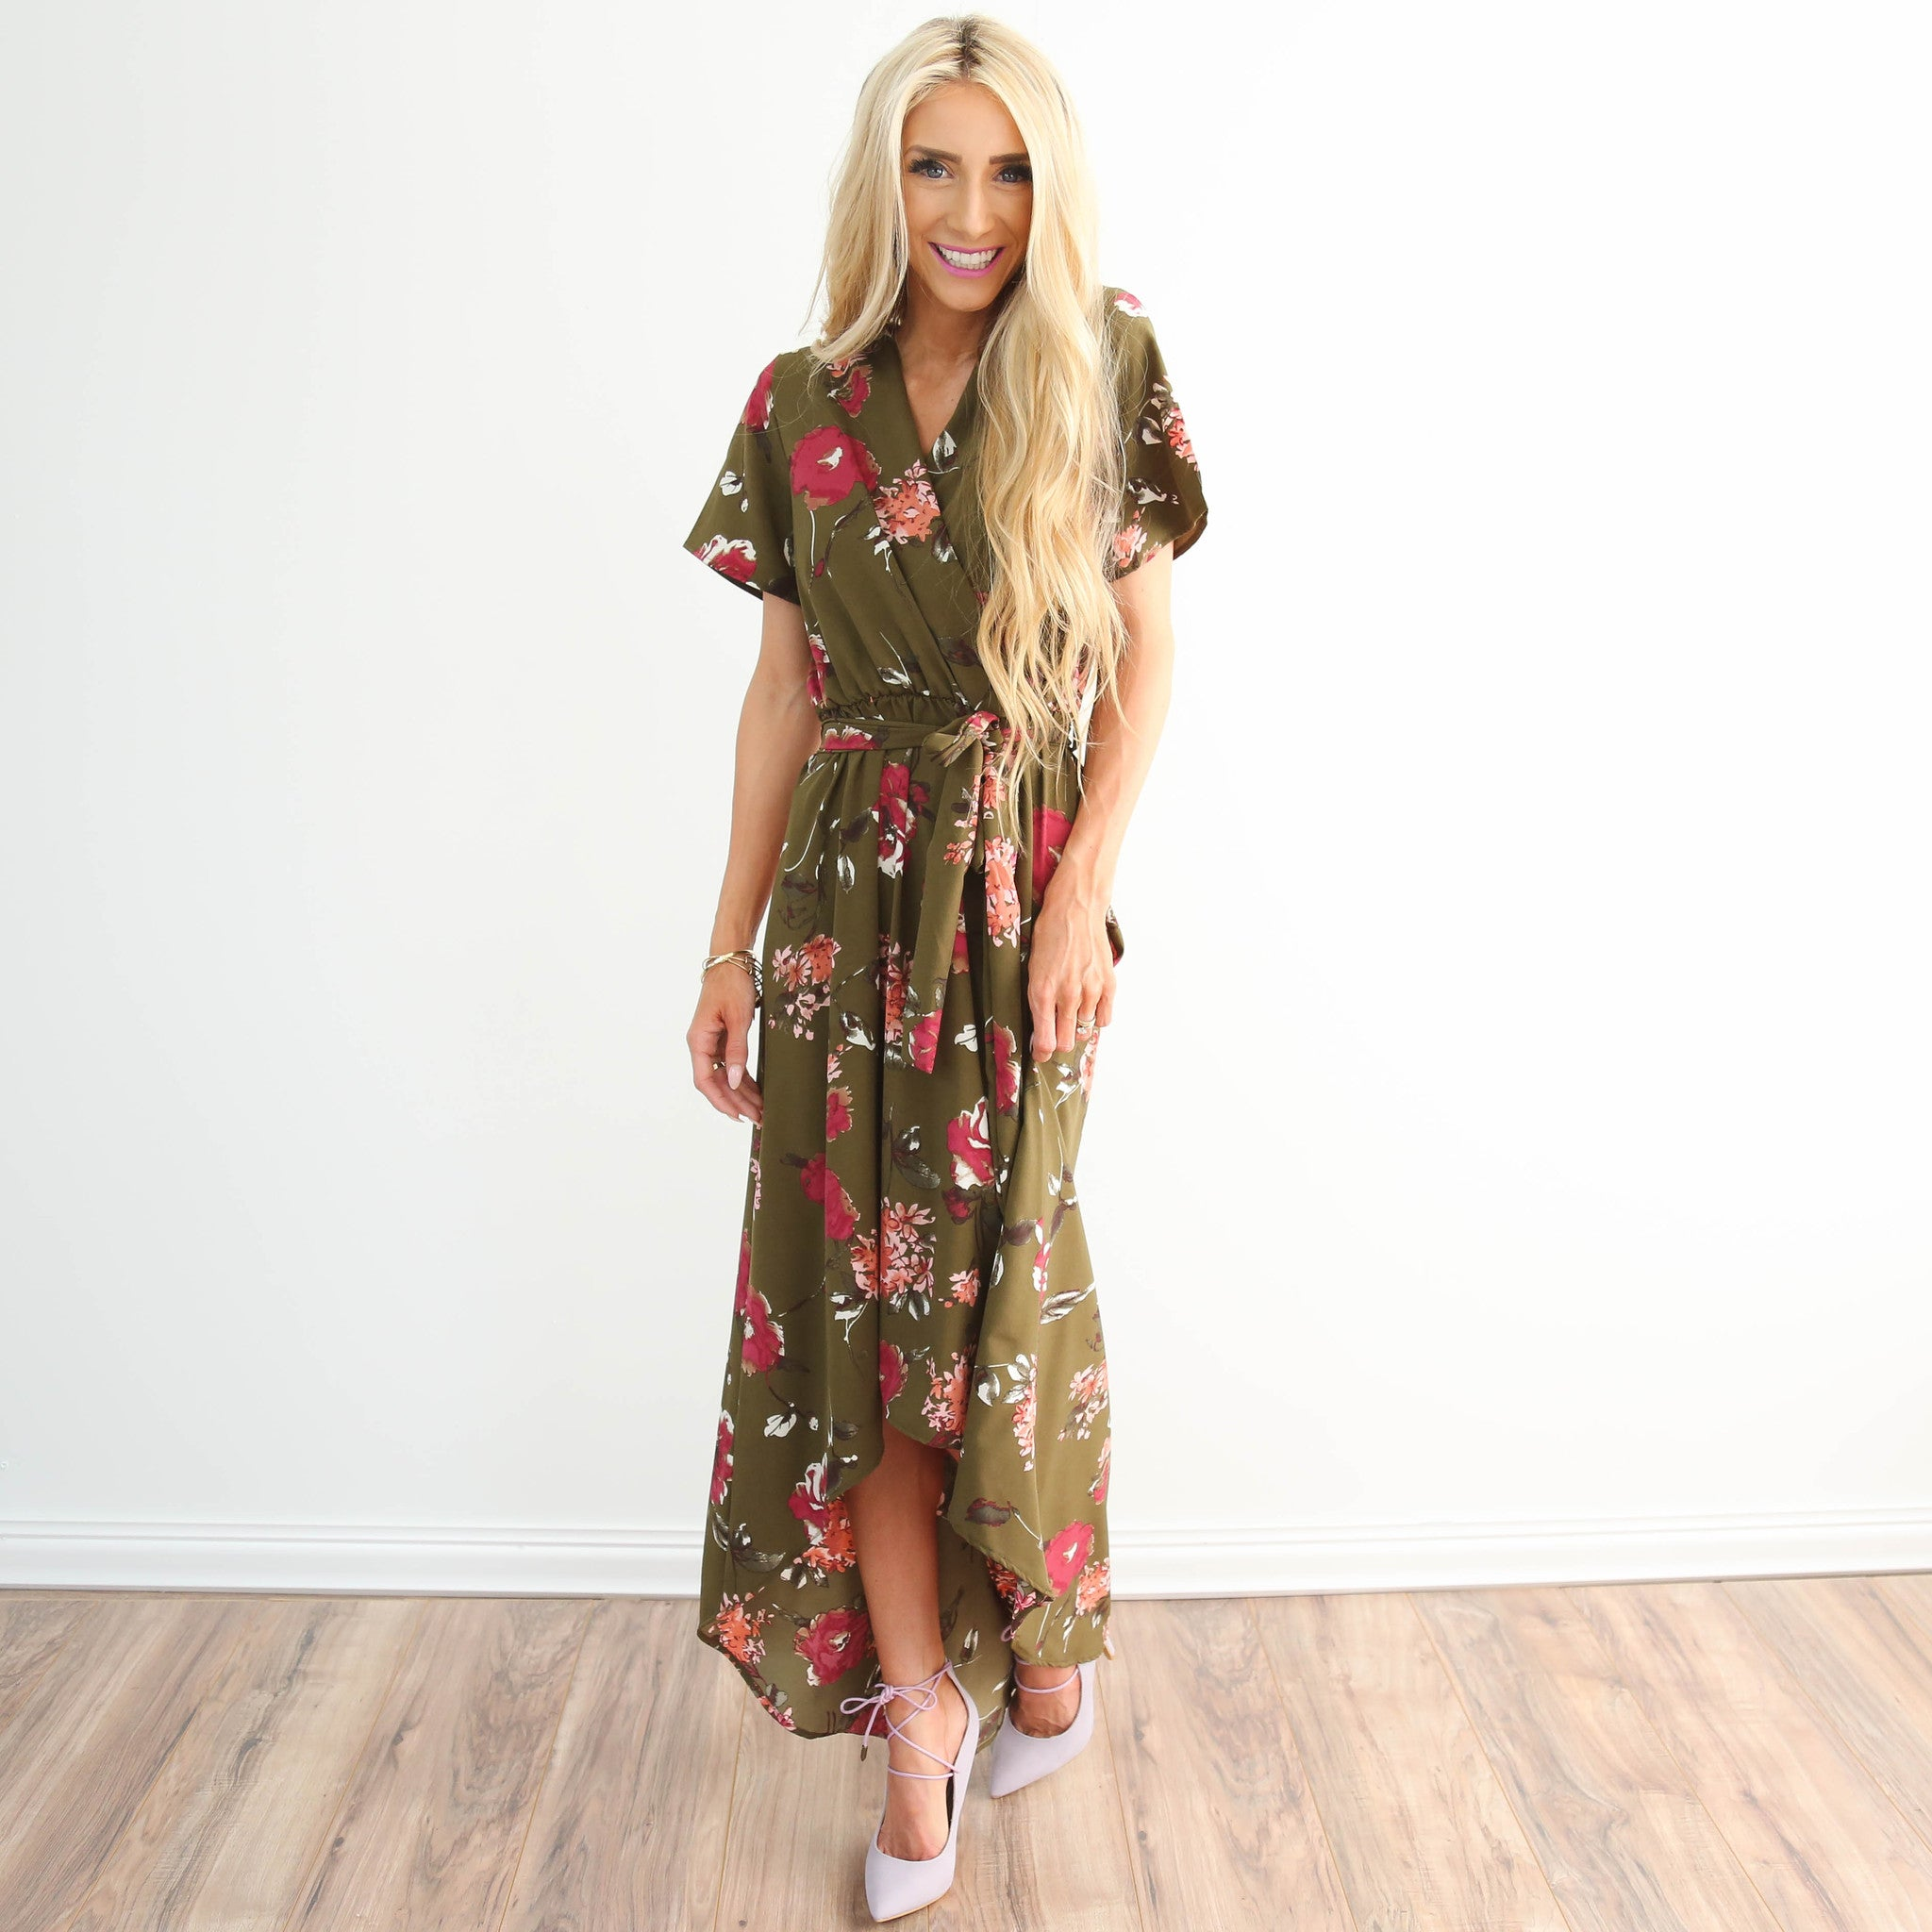 Sabora Olive Floral Dress